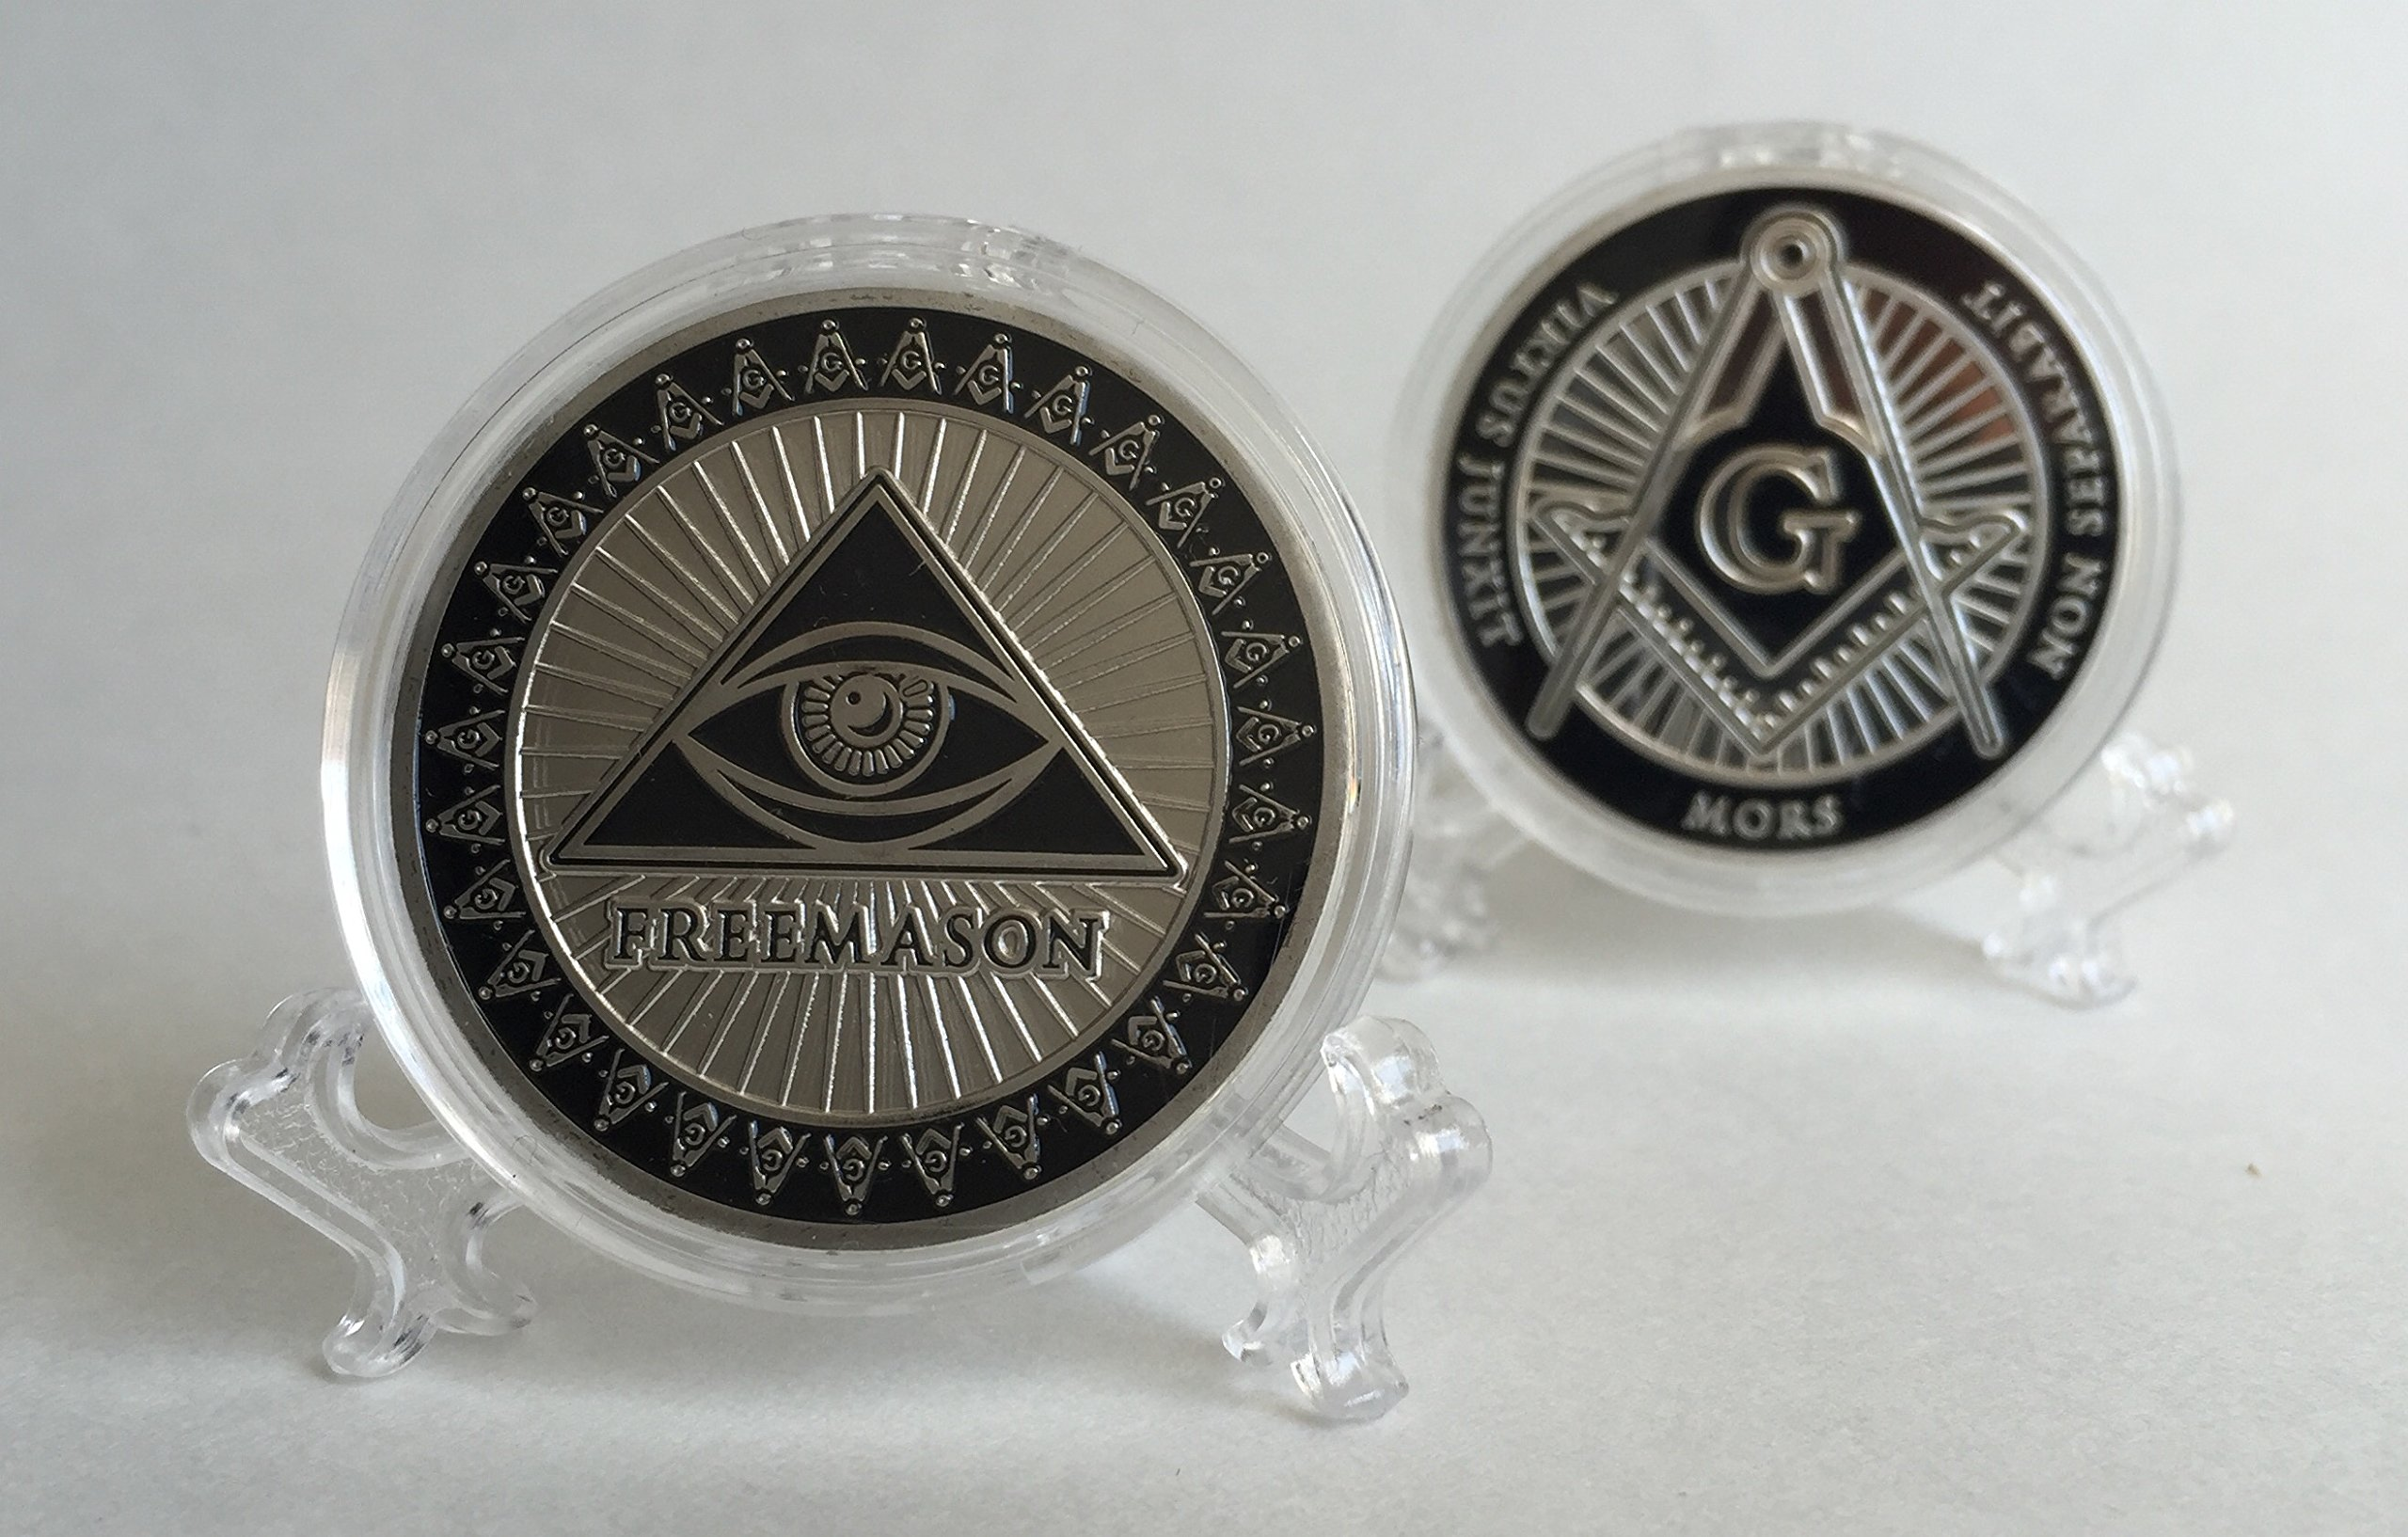 Freemason Silver color Collectible Challenge Coin by Lucky Donk, Poker Card Guard, Golf Ball Marker, paperweight